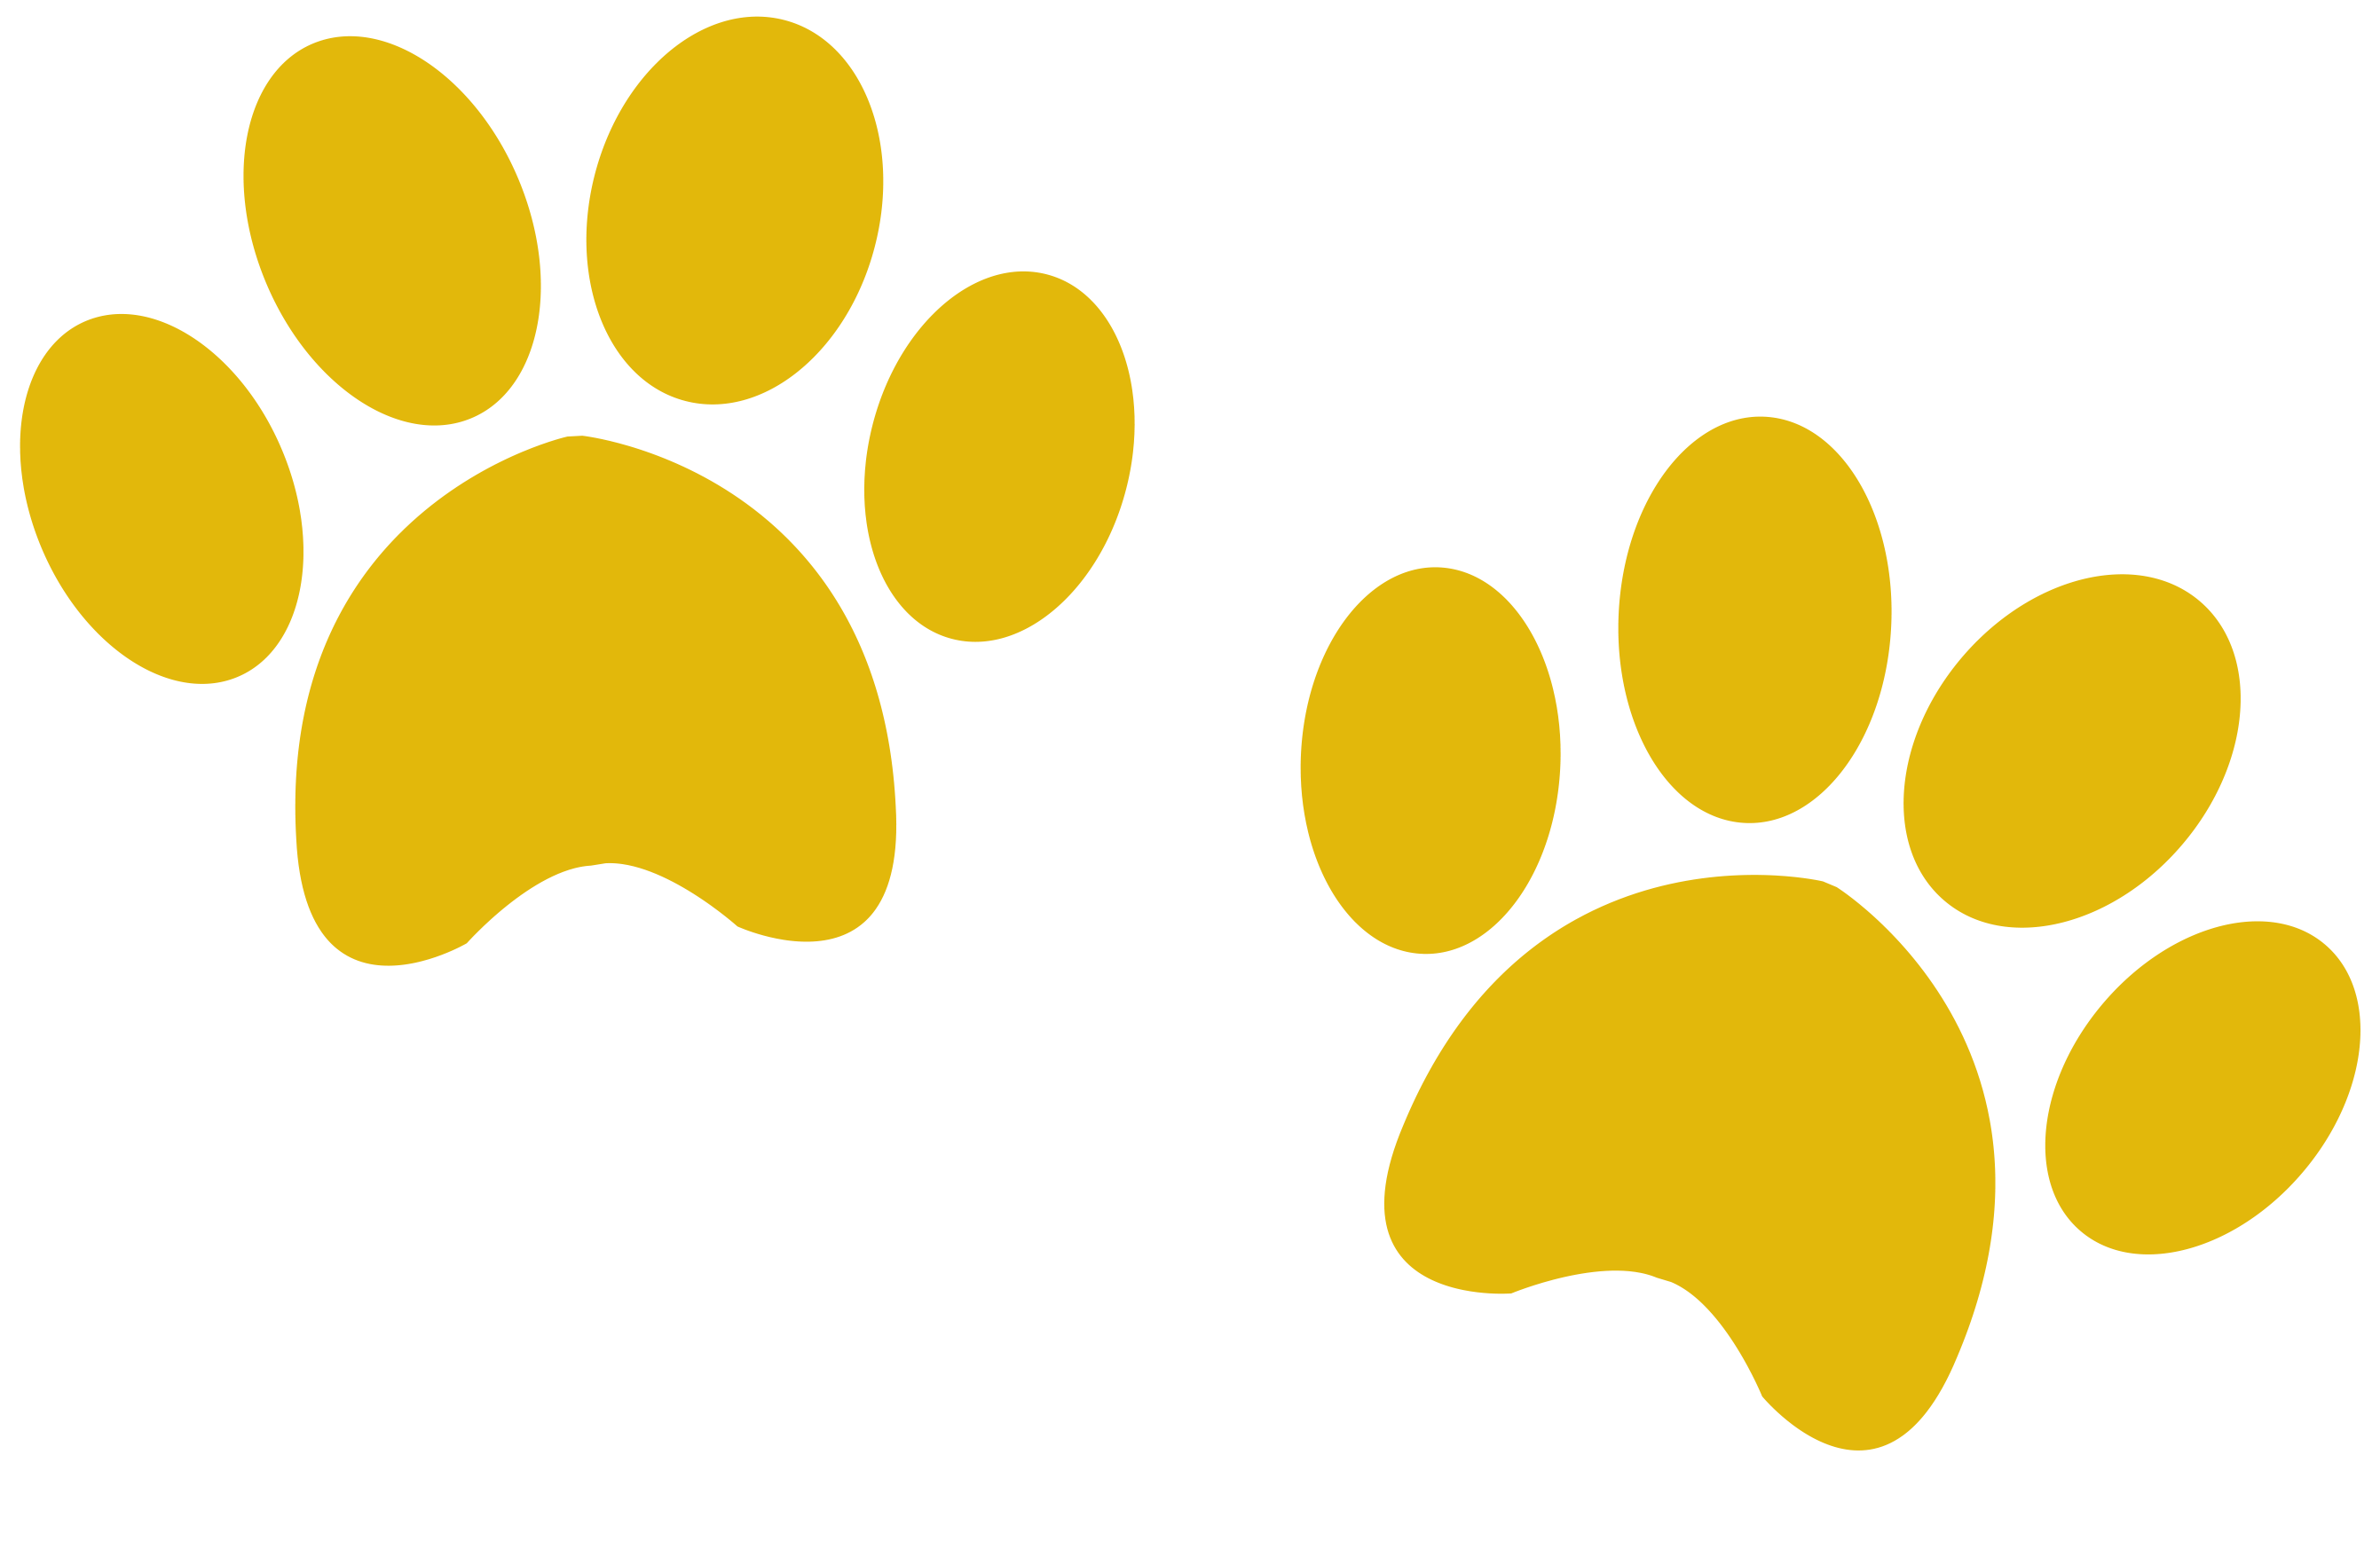 Paws clipart yellow dog. Owners all our cottages